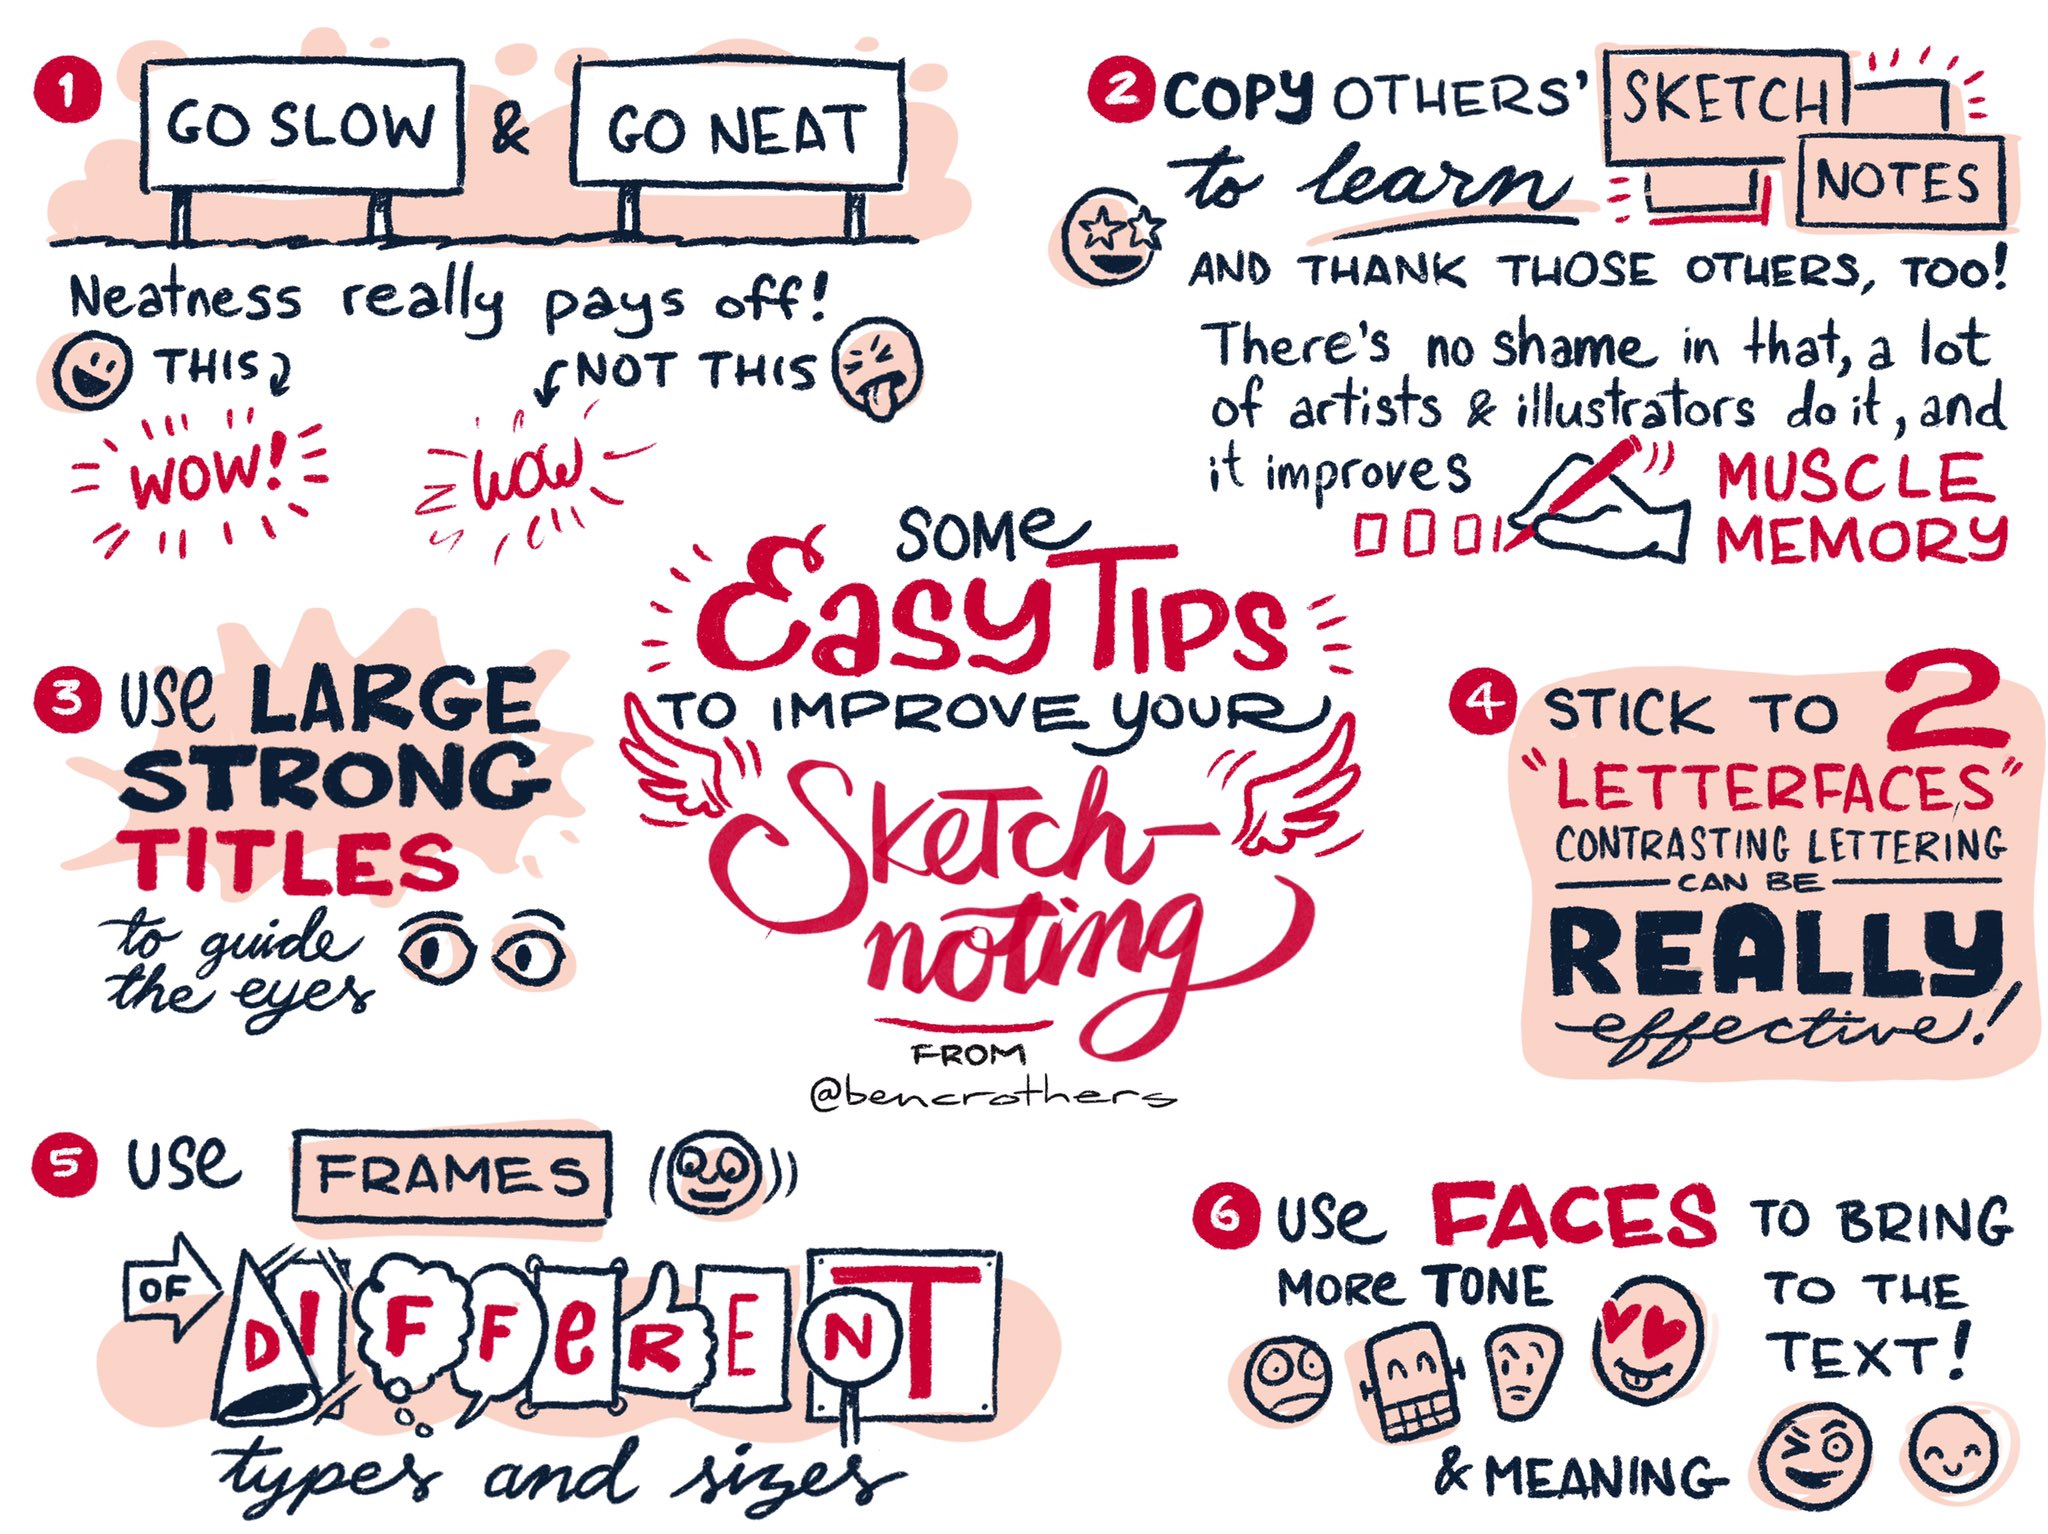 Happy World Sketchnote Day everyone! There are too many peeps to thank with @-mentions, but thanks to you all! In honour of the day, here's a sketchnote of 6 easy ways to improve your sketchnoting! #SNDay2019 ✨✍️🌍 https://t.co/Rd9wsUBXD6